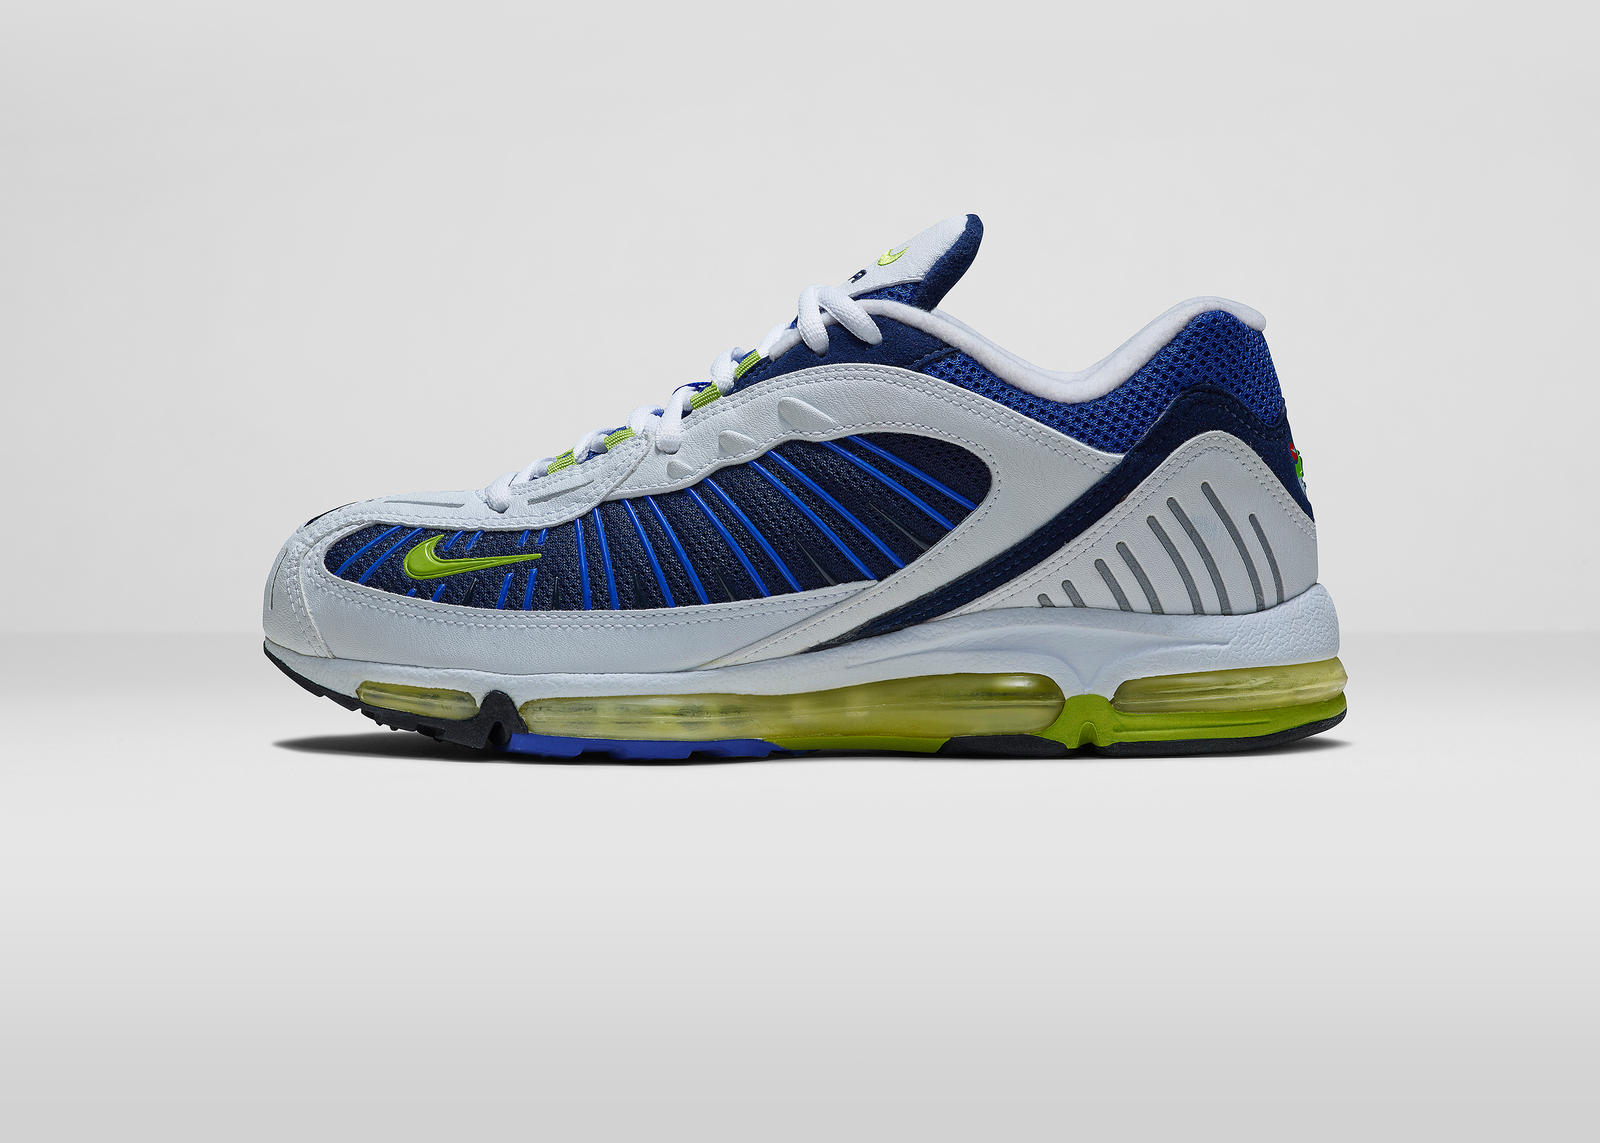 nouveau concept 6dcb5 578a6 Air Max Archives - Nike News